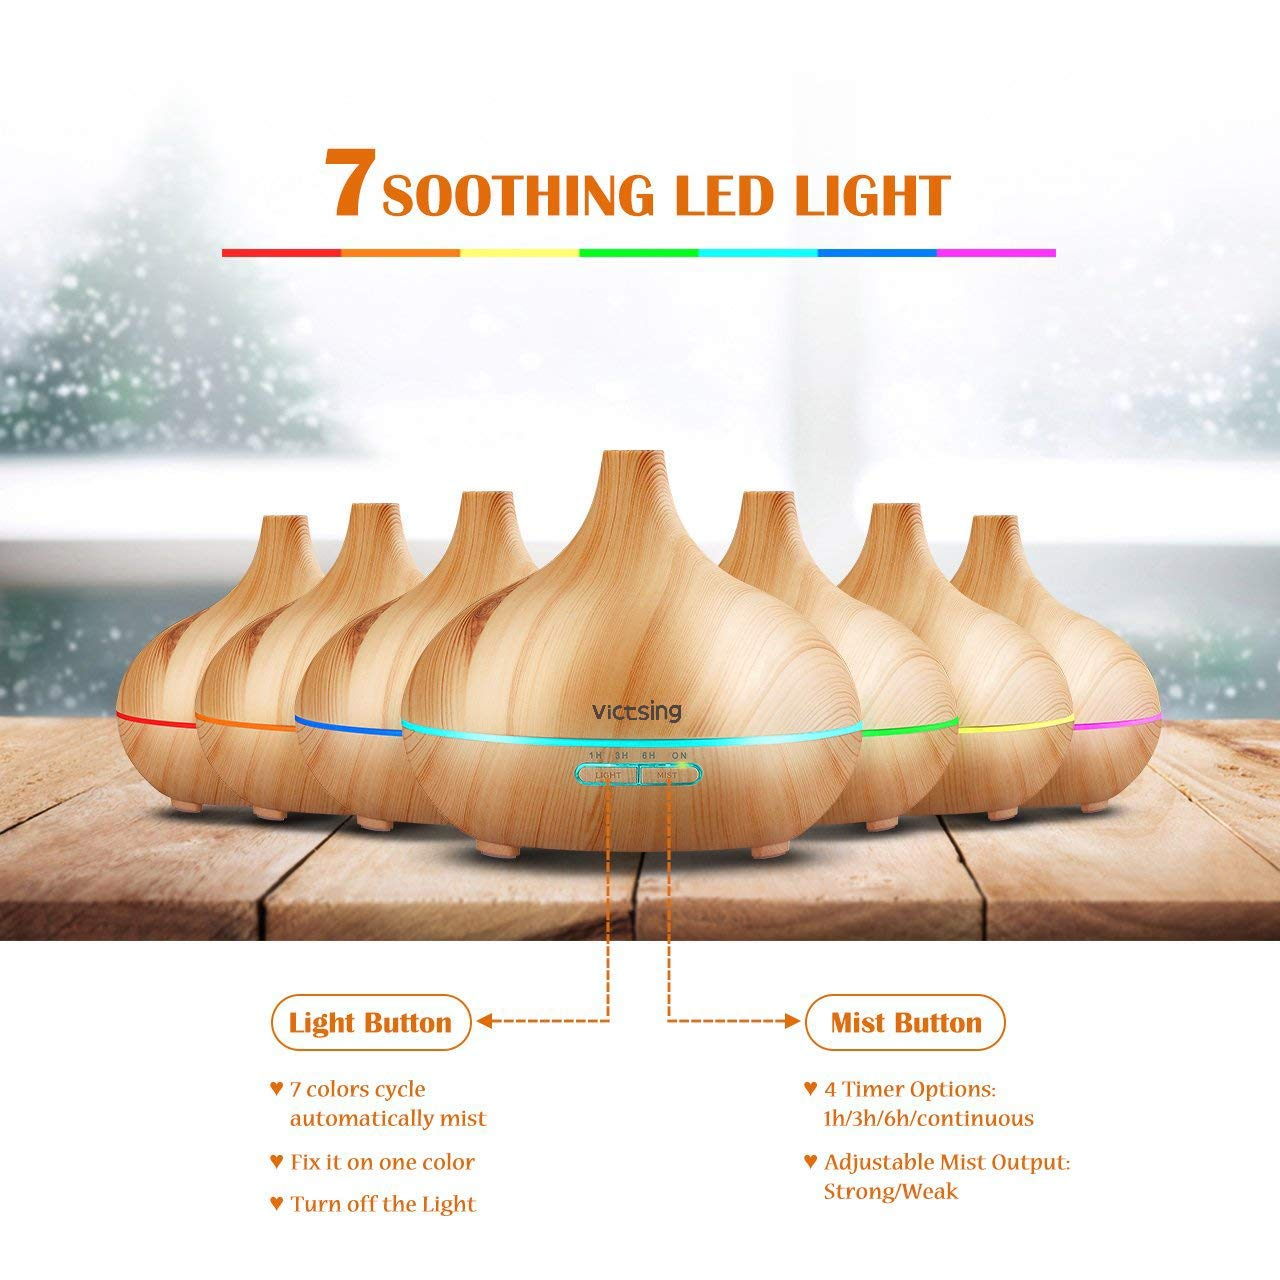 Victsing 300ml Cool Mist Humidifier Ultrasonic Aroma Grain Dryer Wiring Diagram Essential Oil Diffuser For Office Home Bedroom Living Room Study Yoga Spa Wood